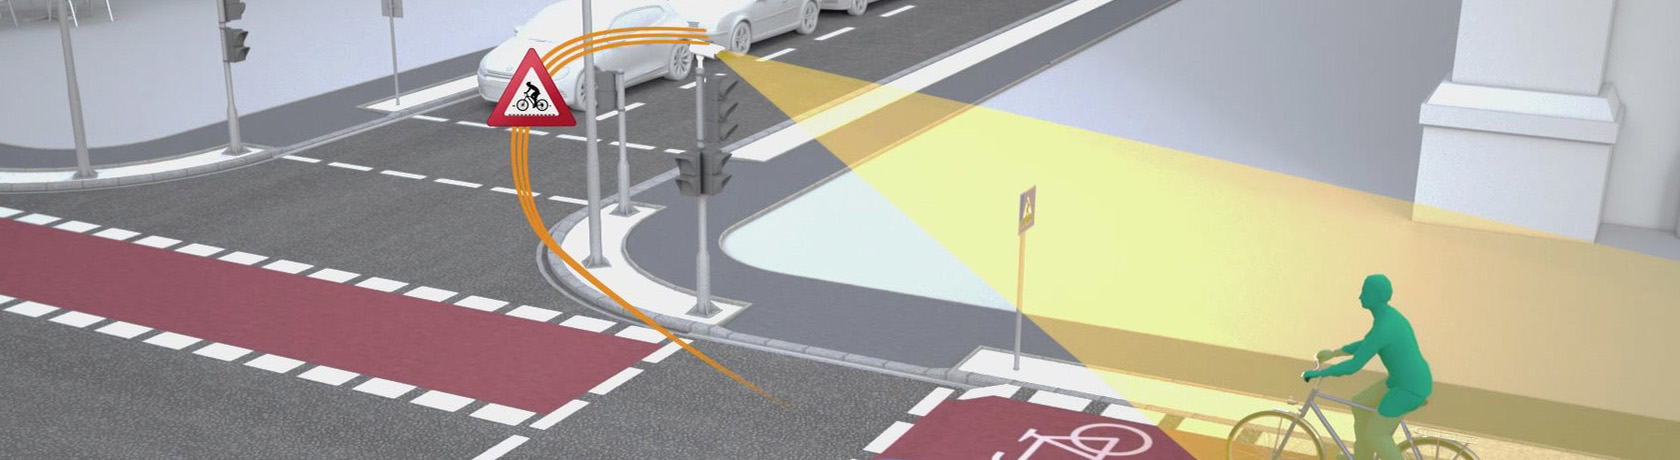 WLANp and IA technology to make crossroads safer